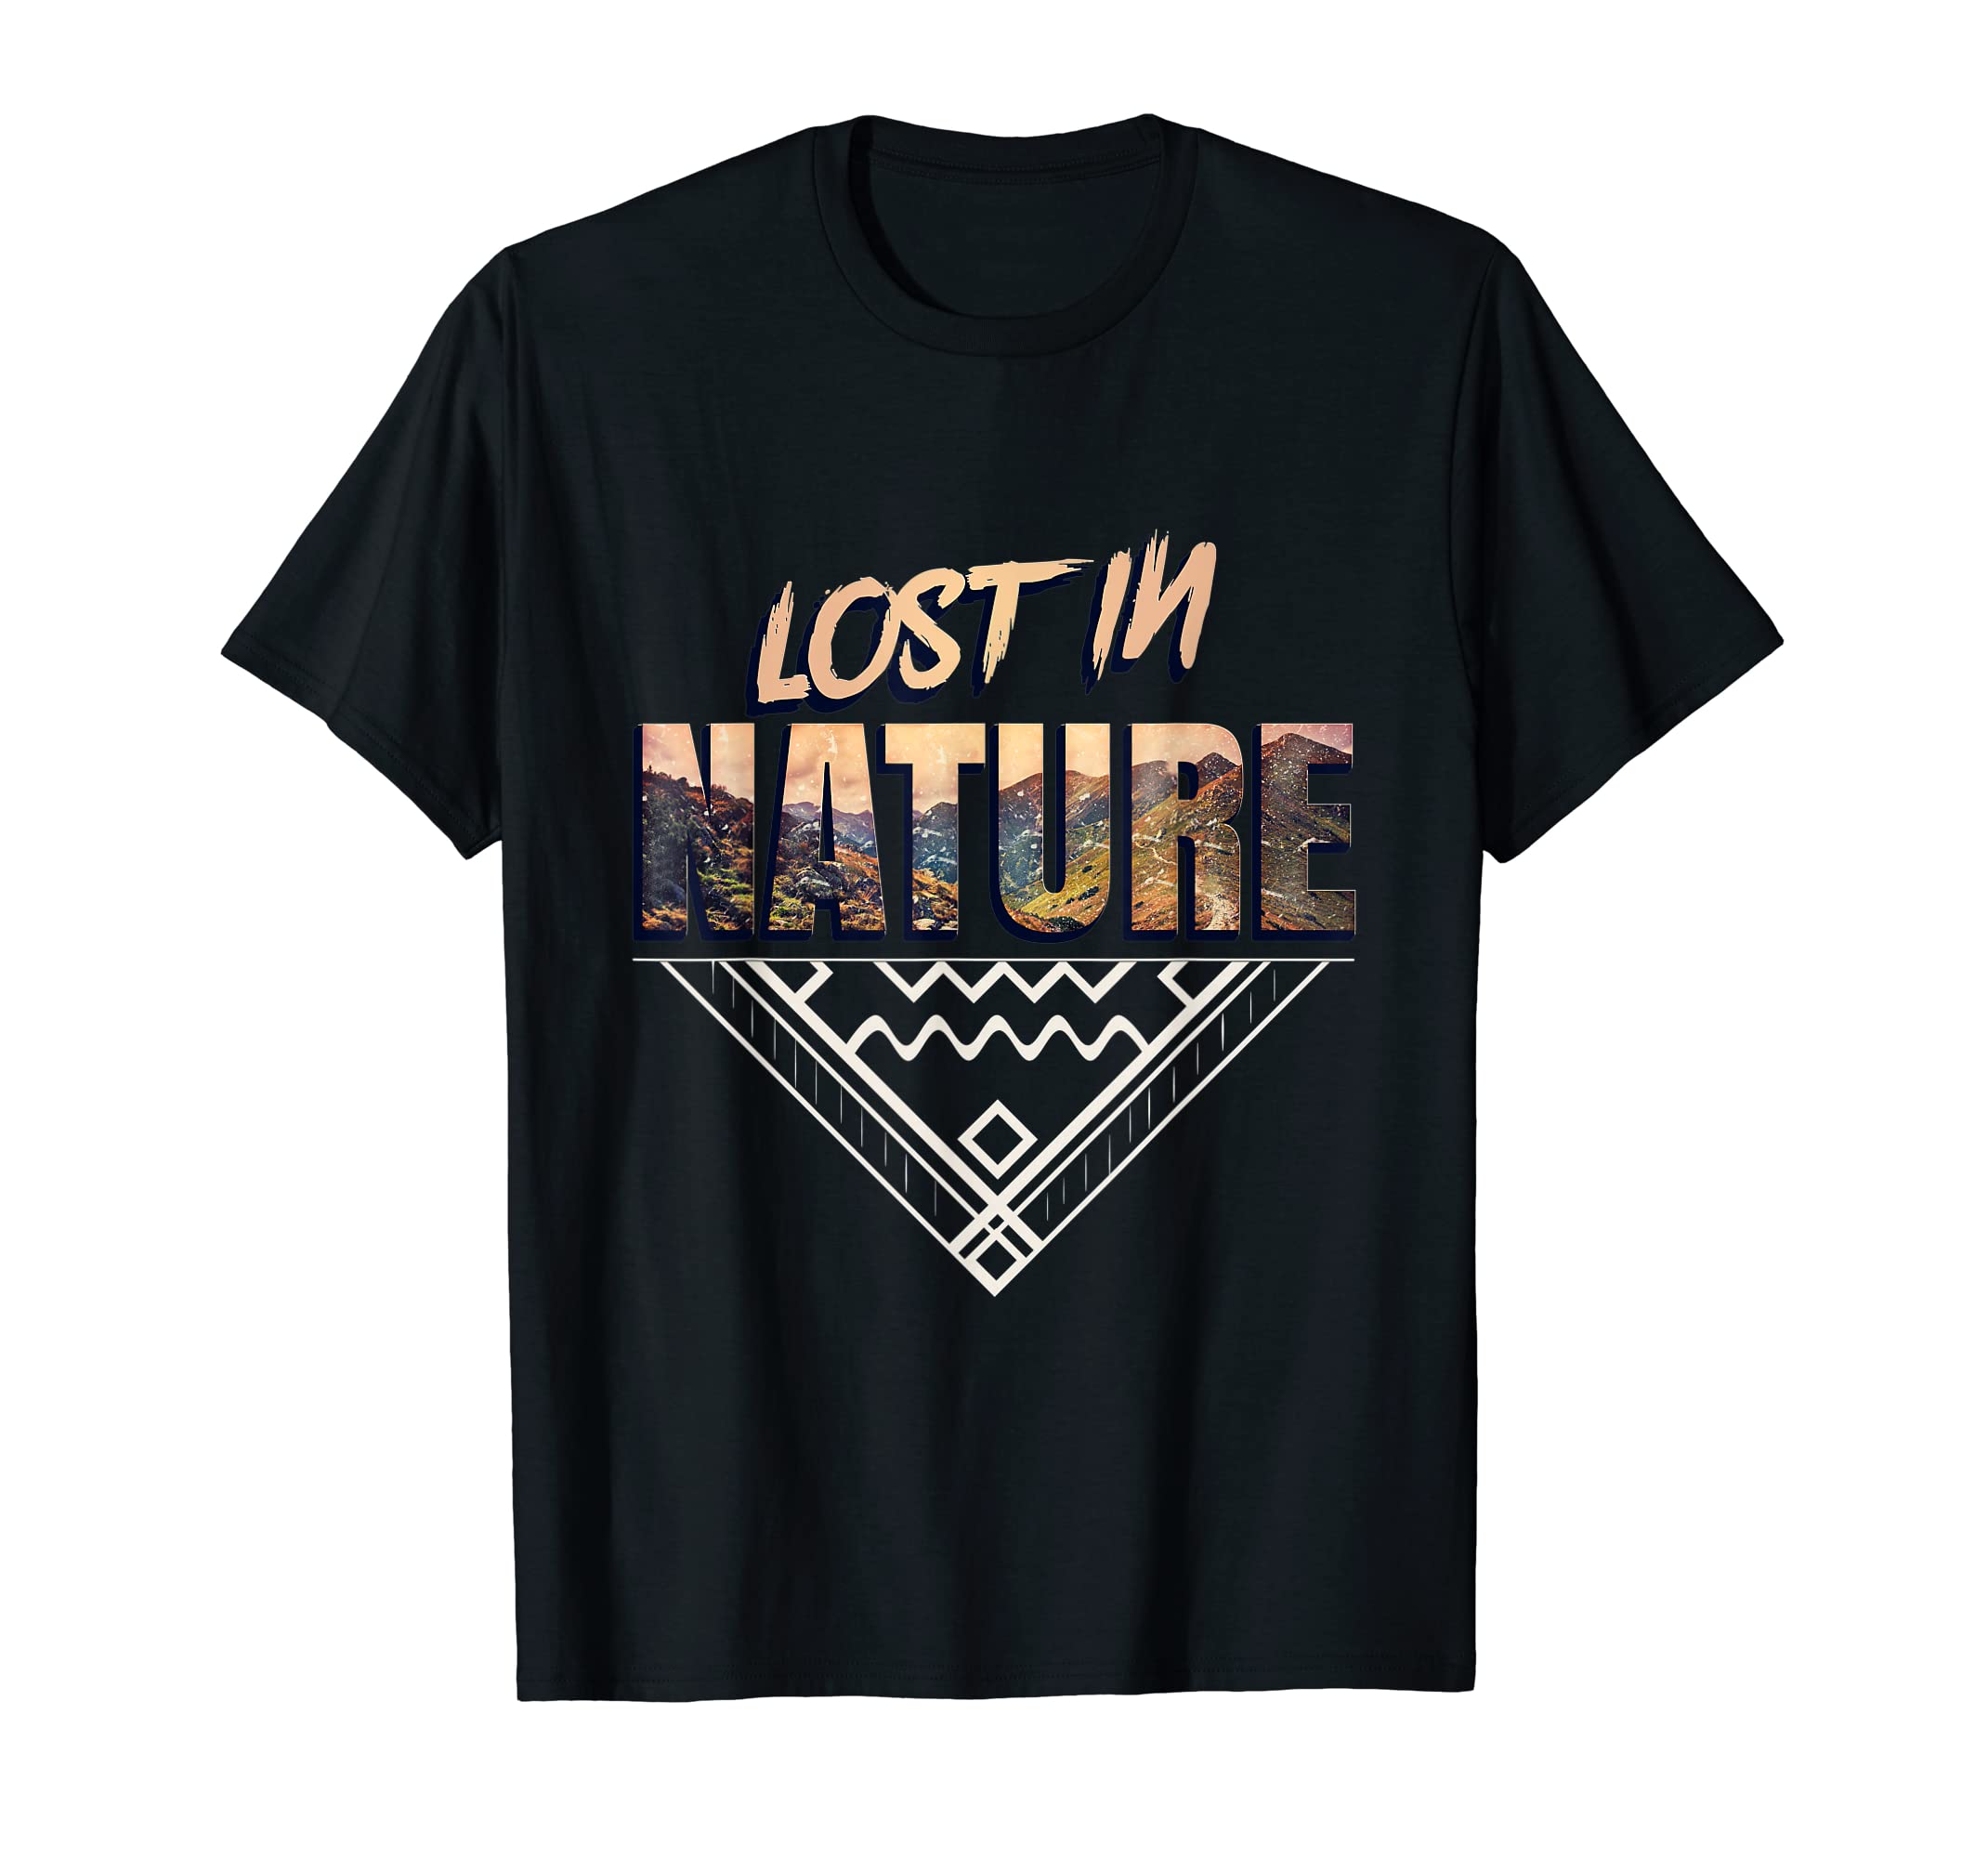 c509bd63 Amazon.com: Lost In Nature Funny Camping Outdoor T Shirt Explorers Gift:  Clothing